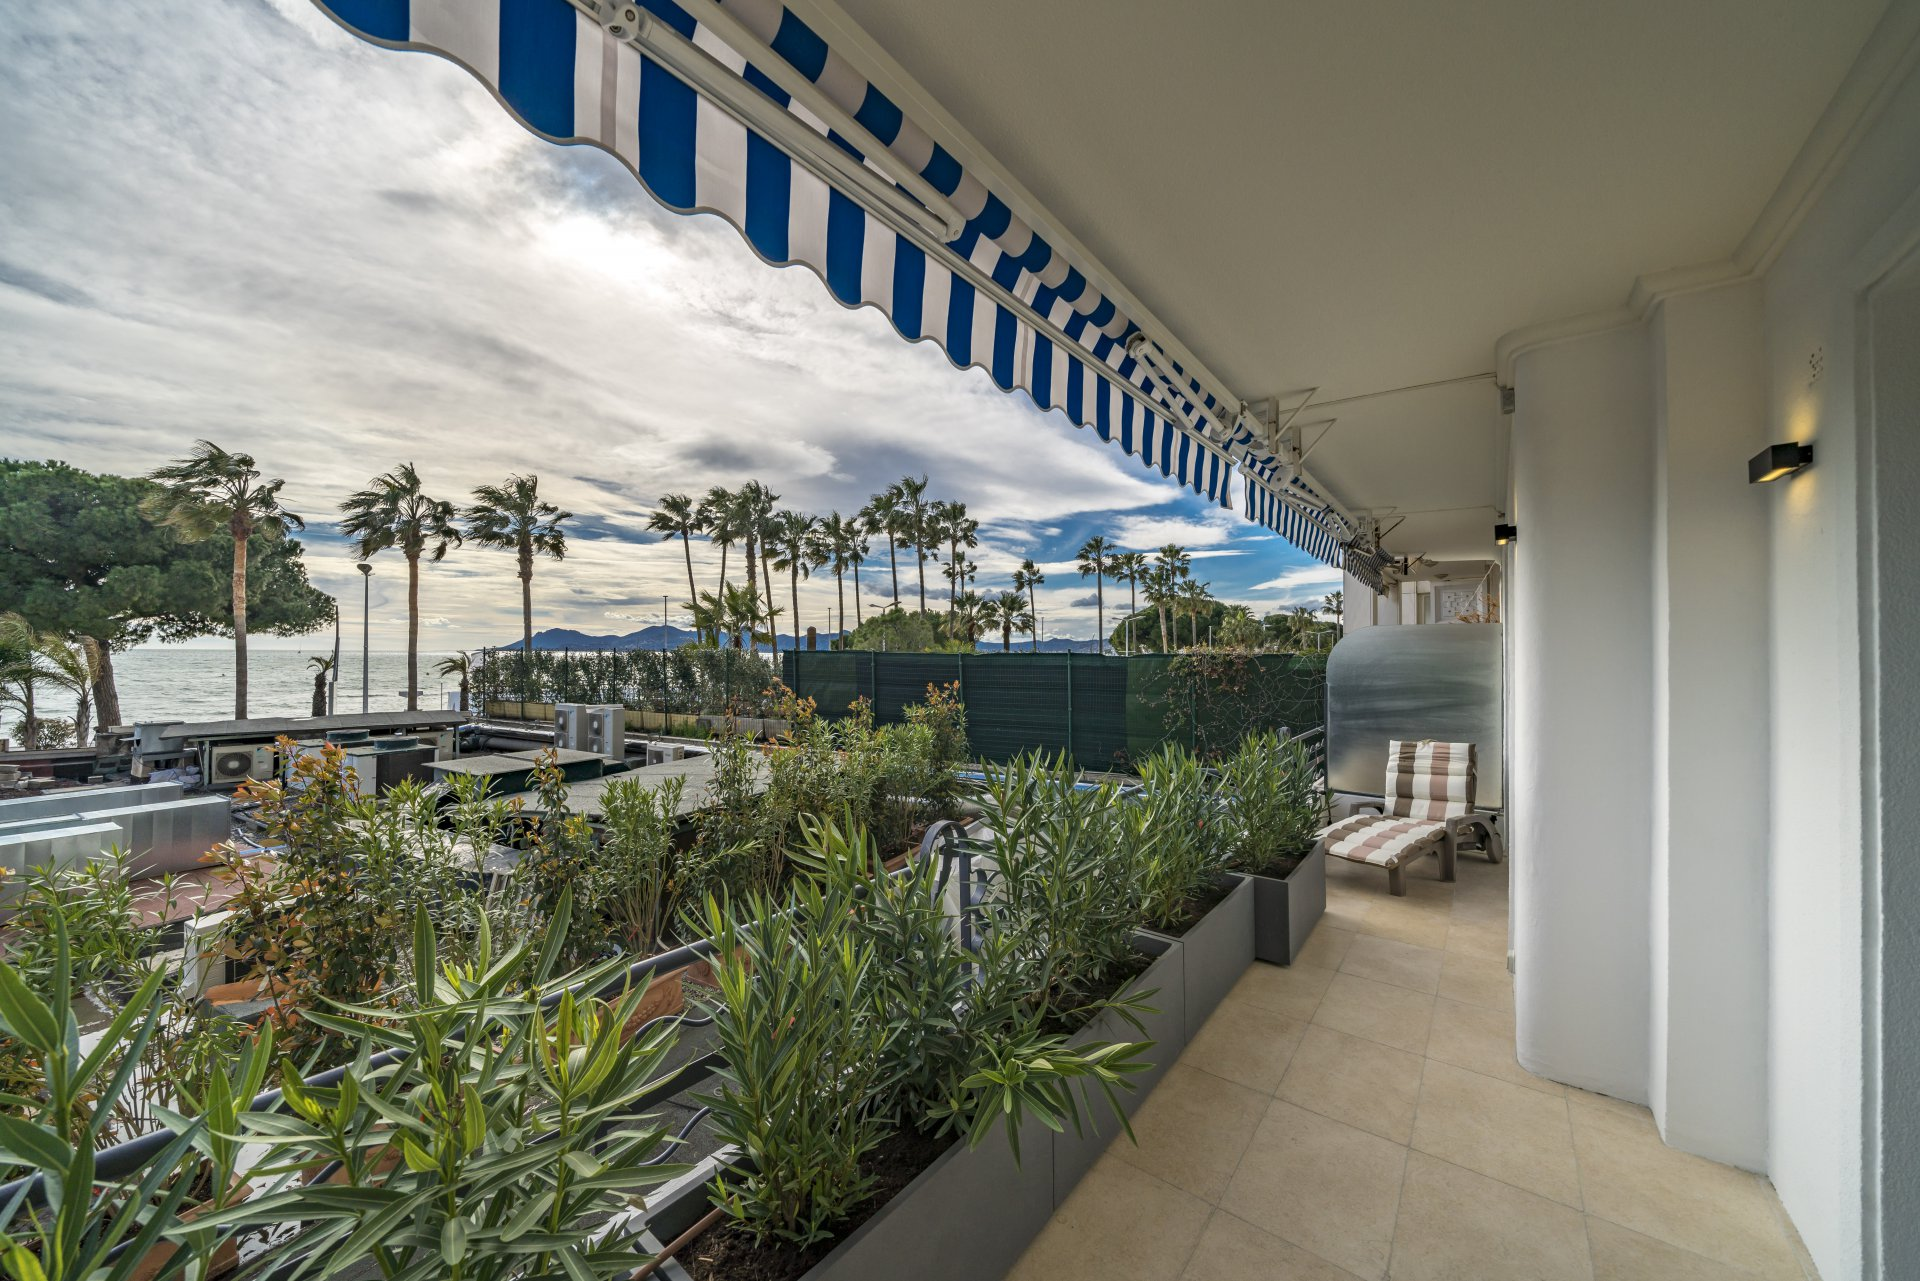 Congress rentals 2 bedroom on The Croisette Cannes